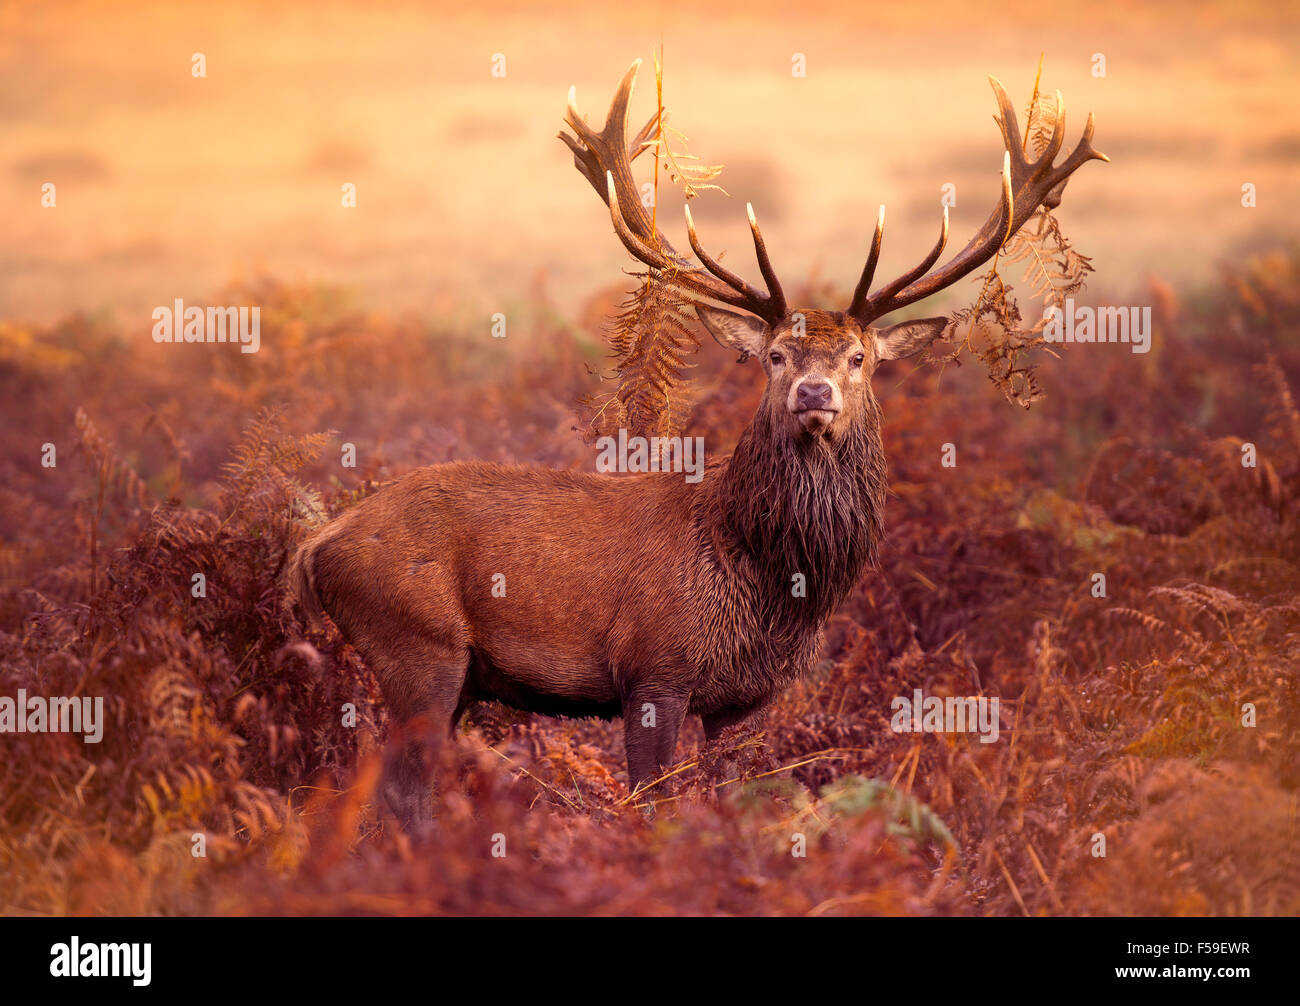 Red Deer Stag dans la brume matinale Photo Stock